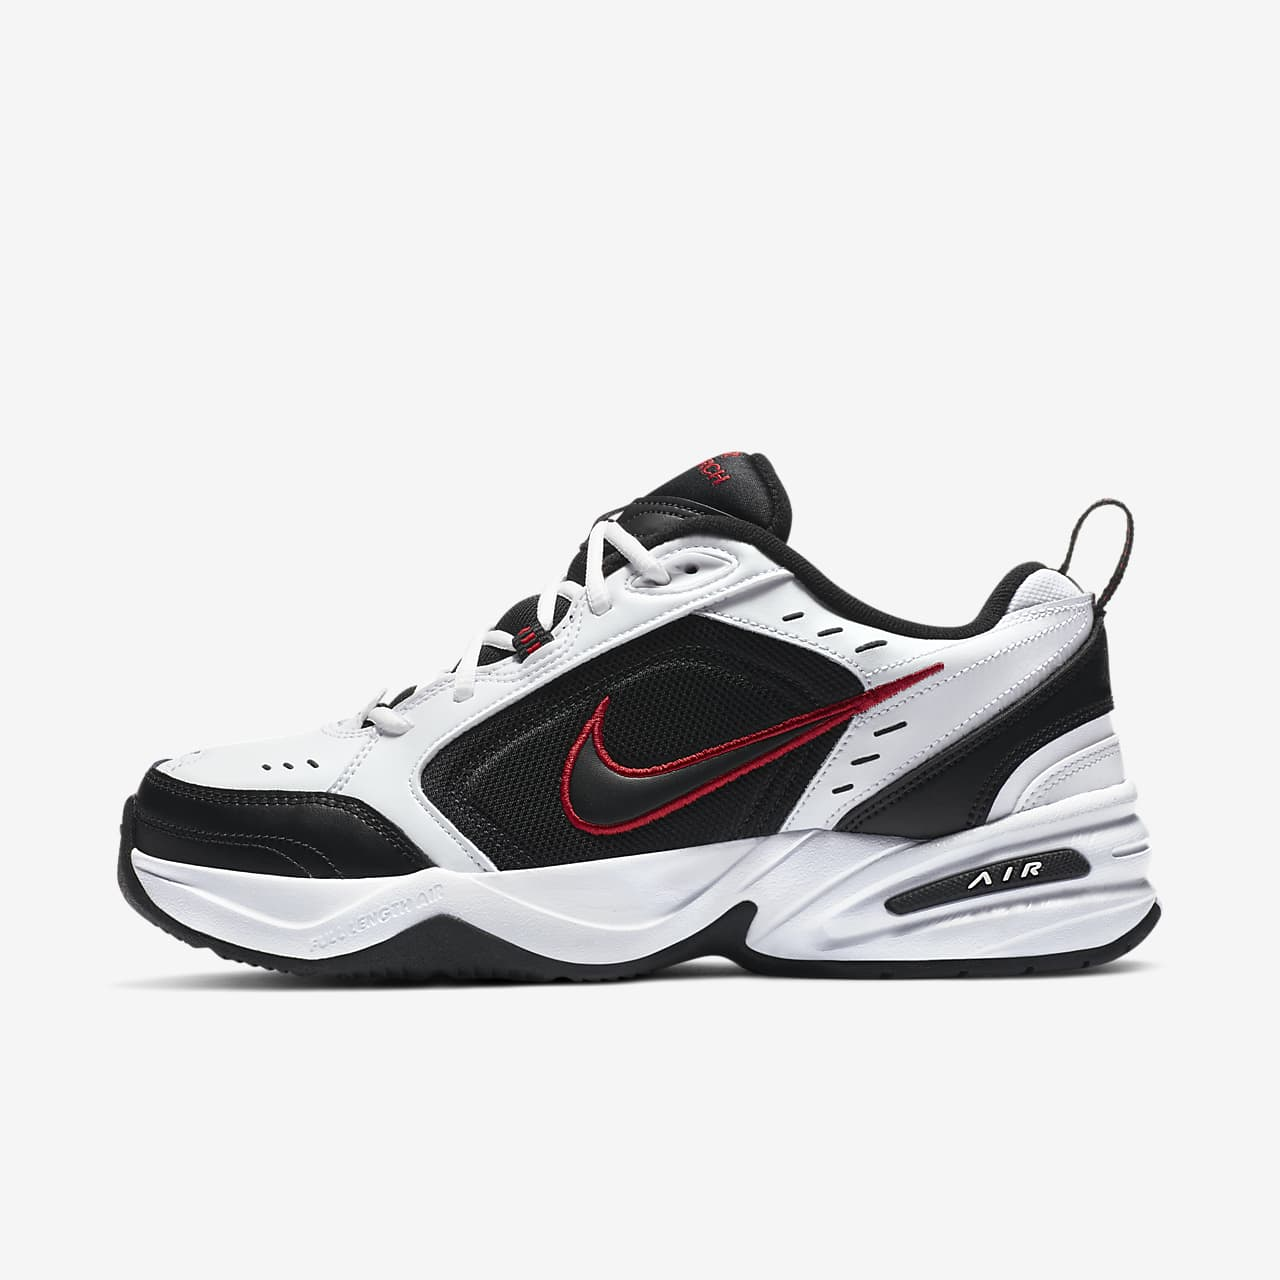 san francisco 994fd 5265a ... Livsstils- och gymsko Nike Air Monarch IV